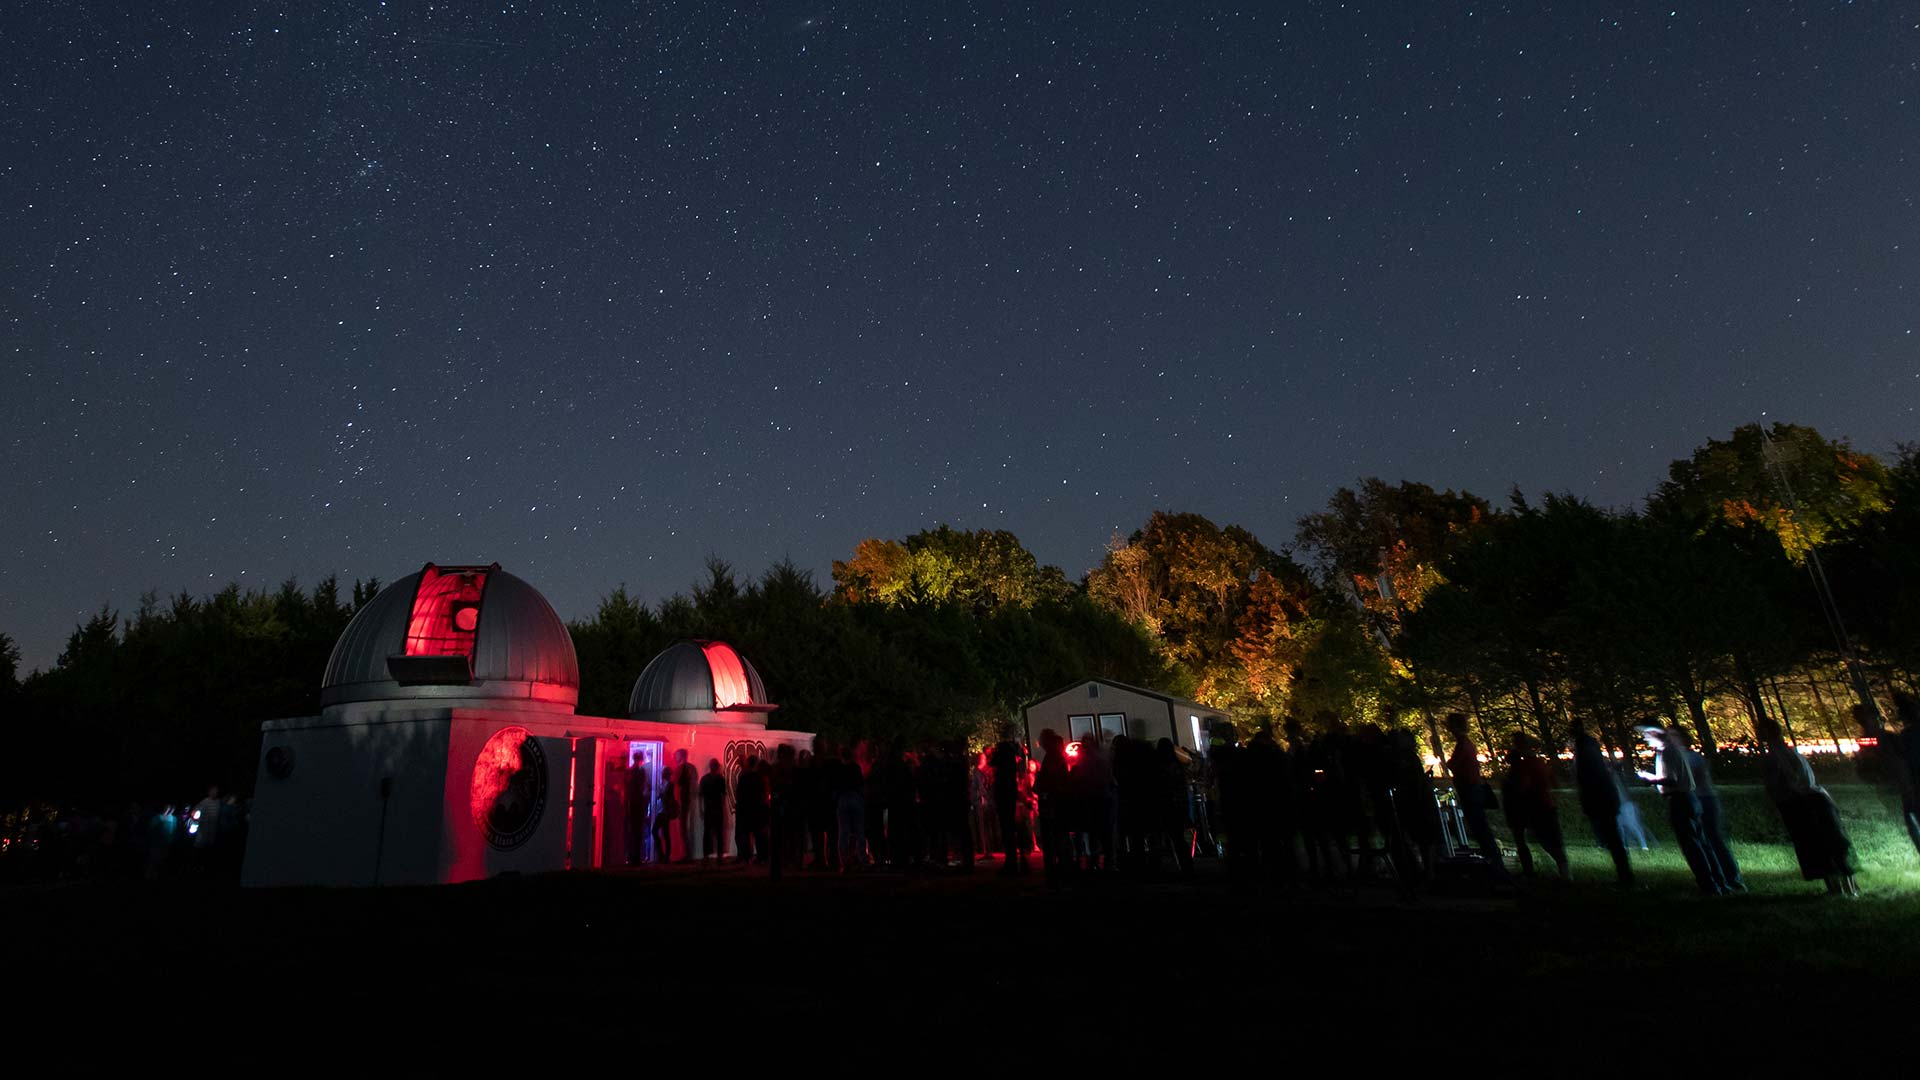 Baker Observatory at night.